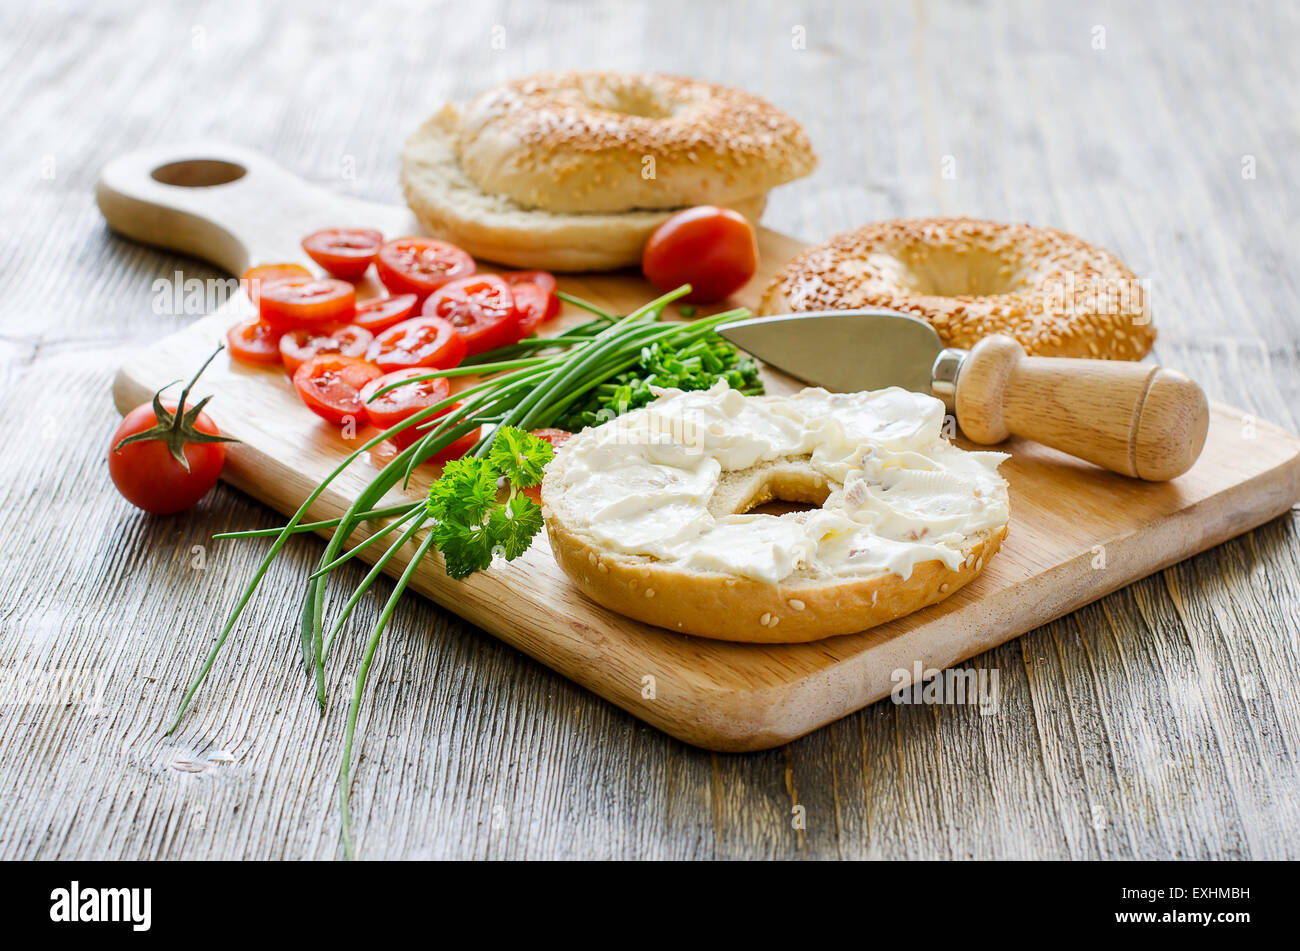 Bagels sandwiches with cream cheese, tomatoes and chives for healthy snack - Stock Image